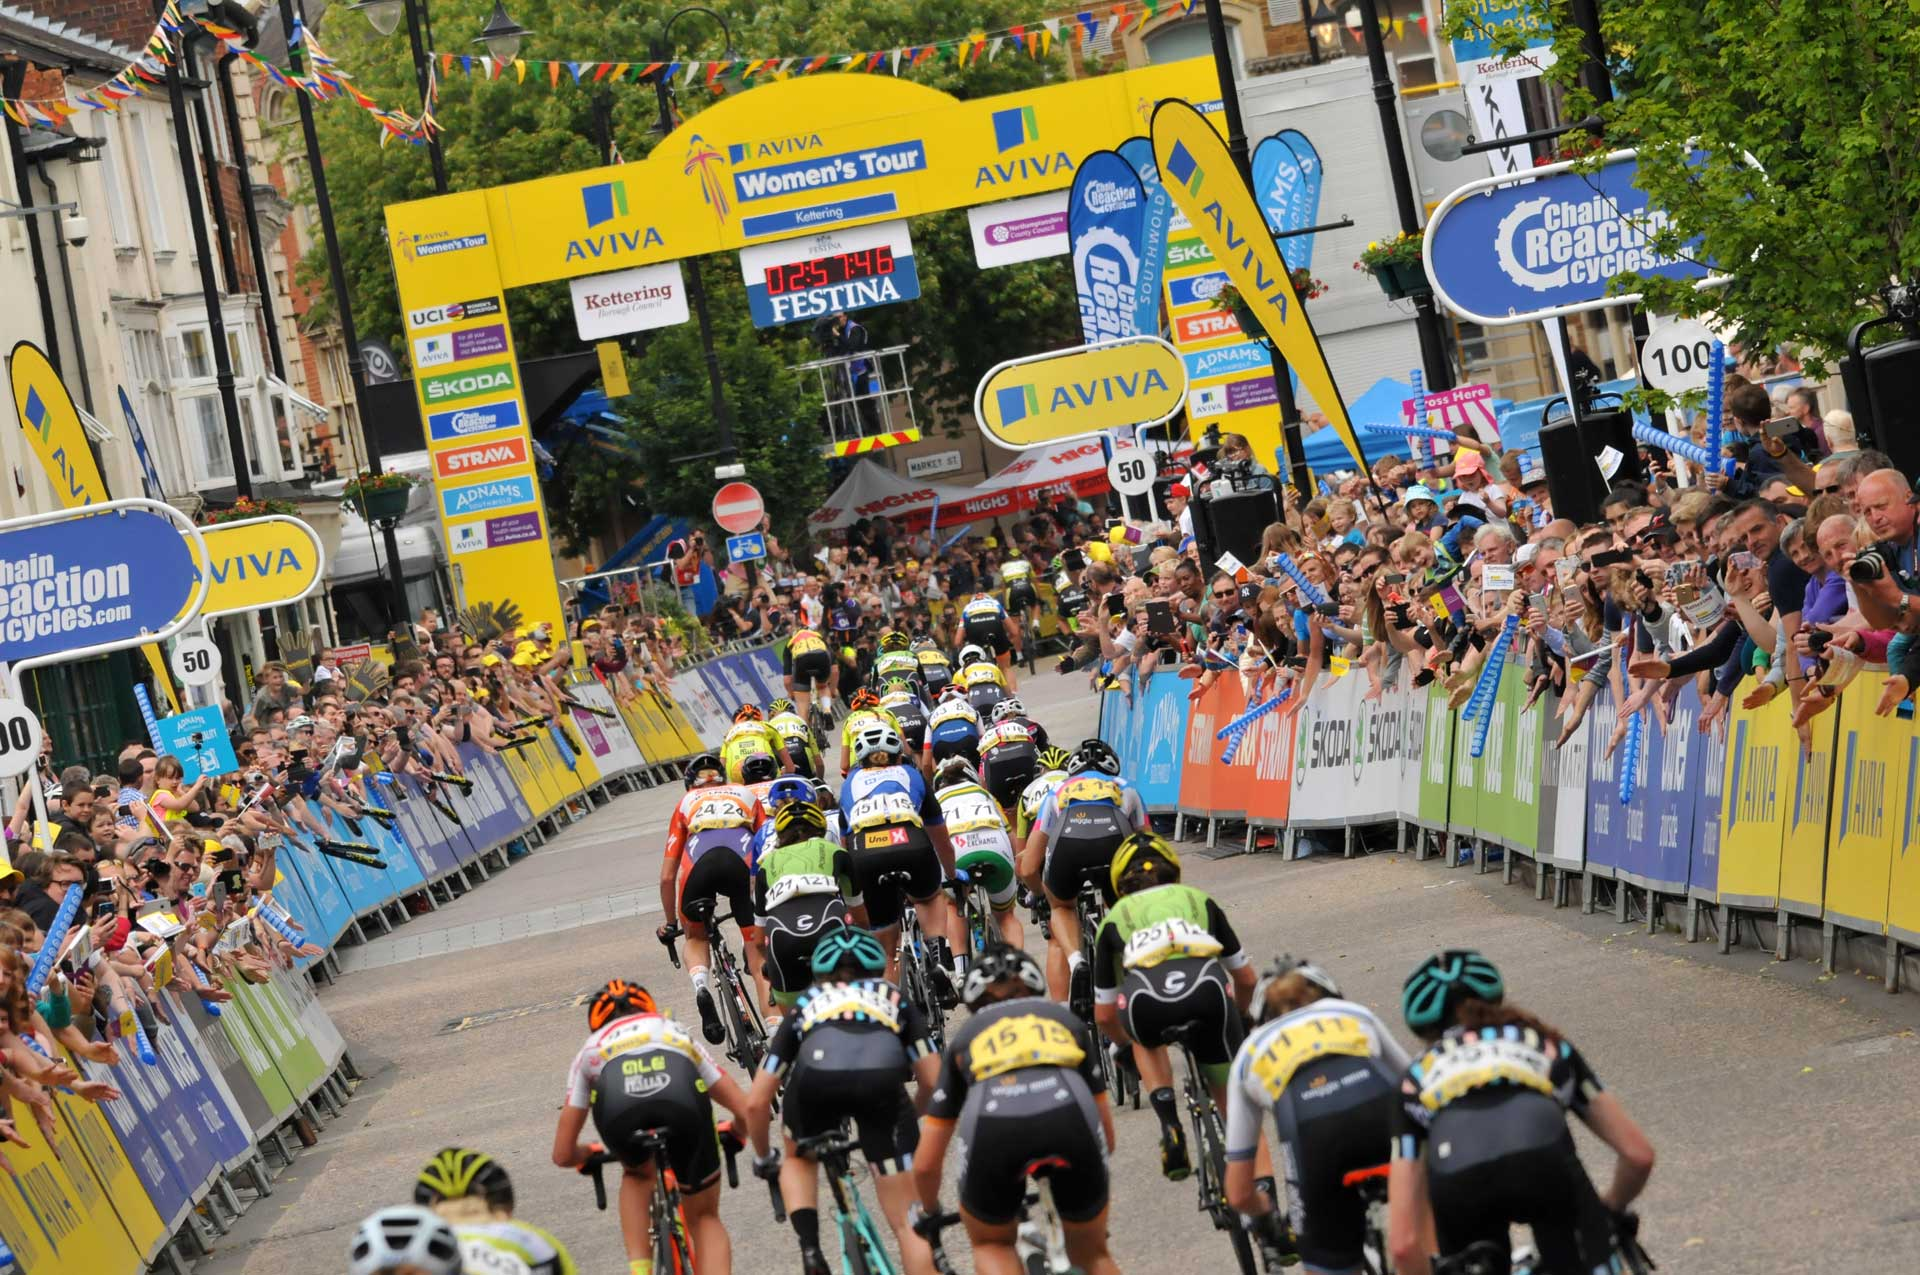 Celebrate the Aviva Women's Tour in the official sportive next month